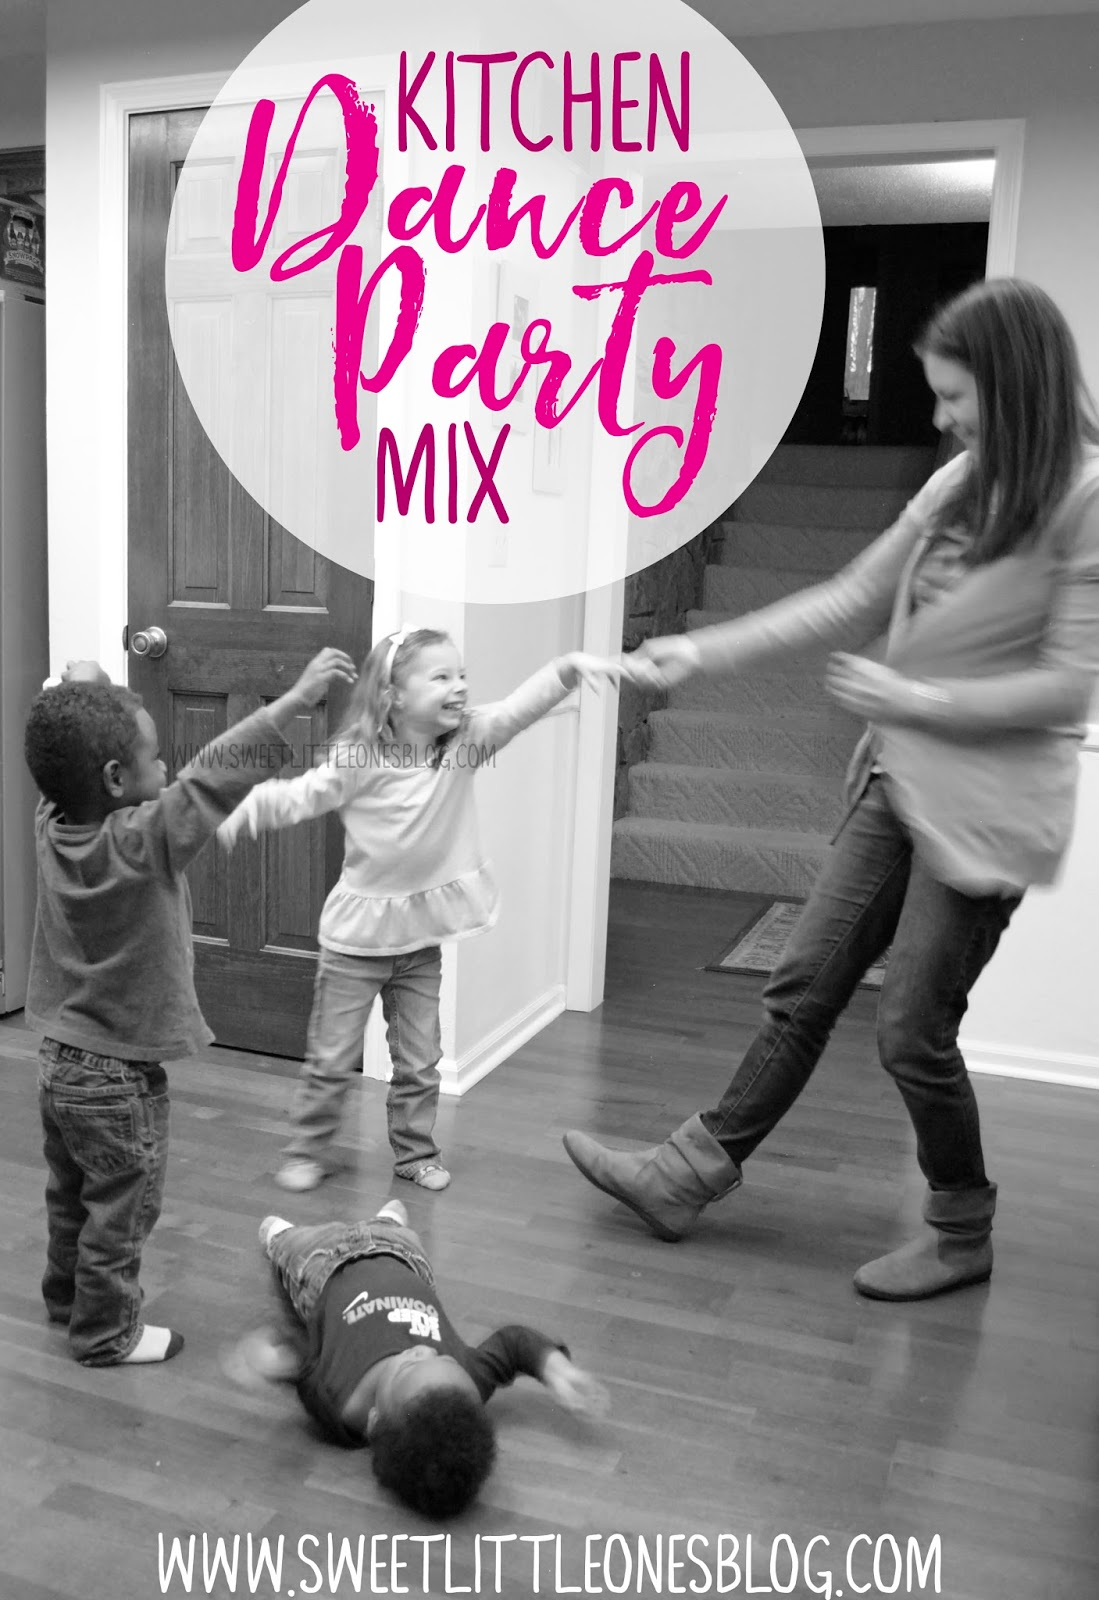 Kitchen dance party mix